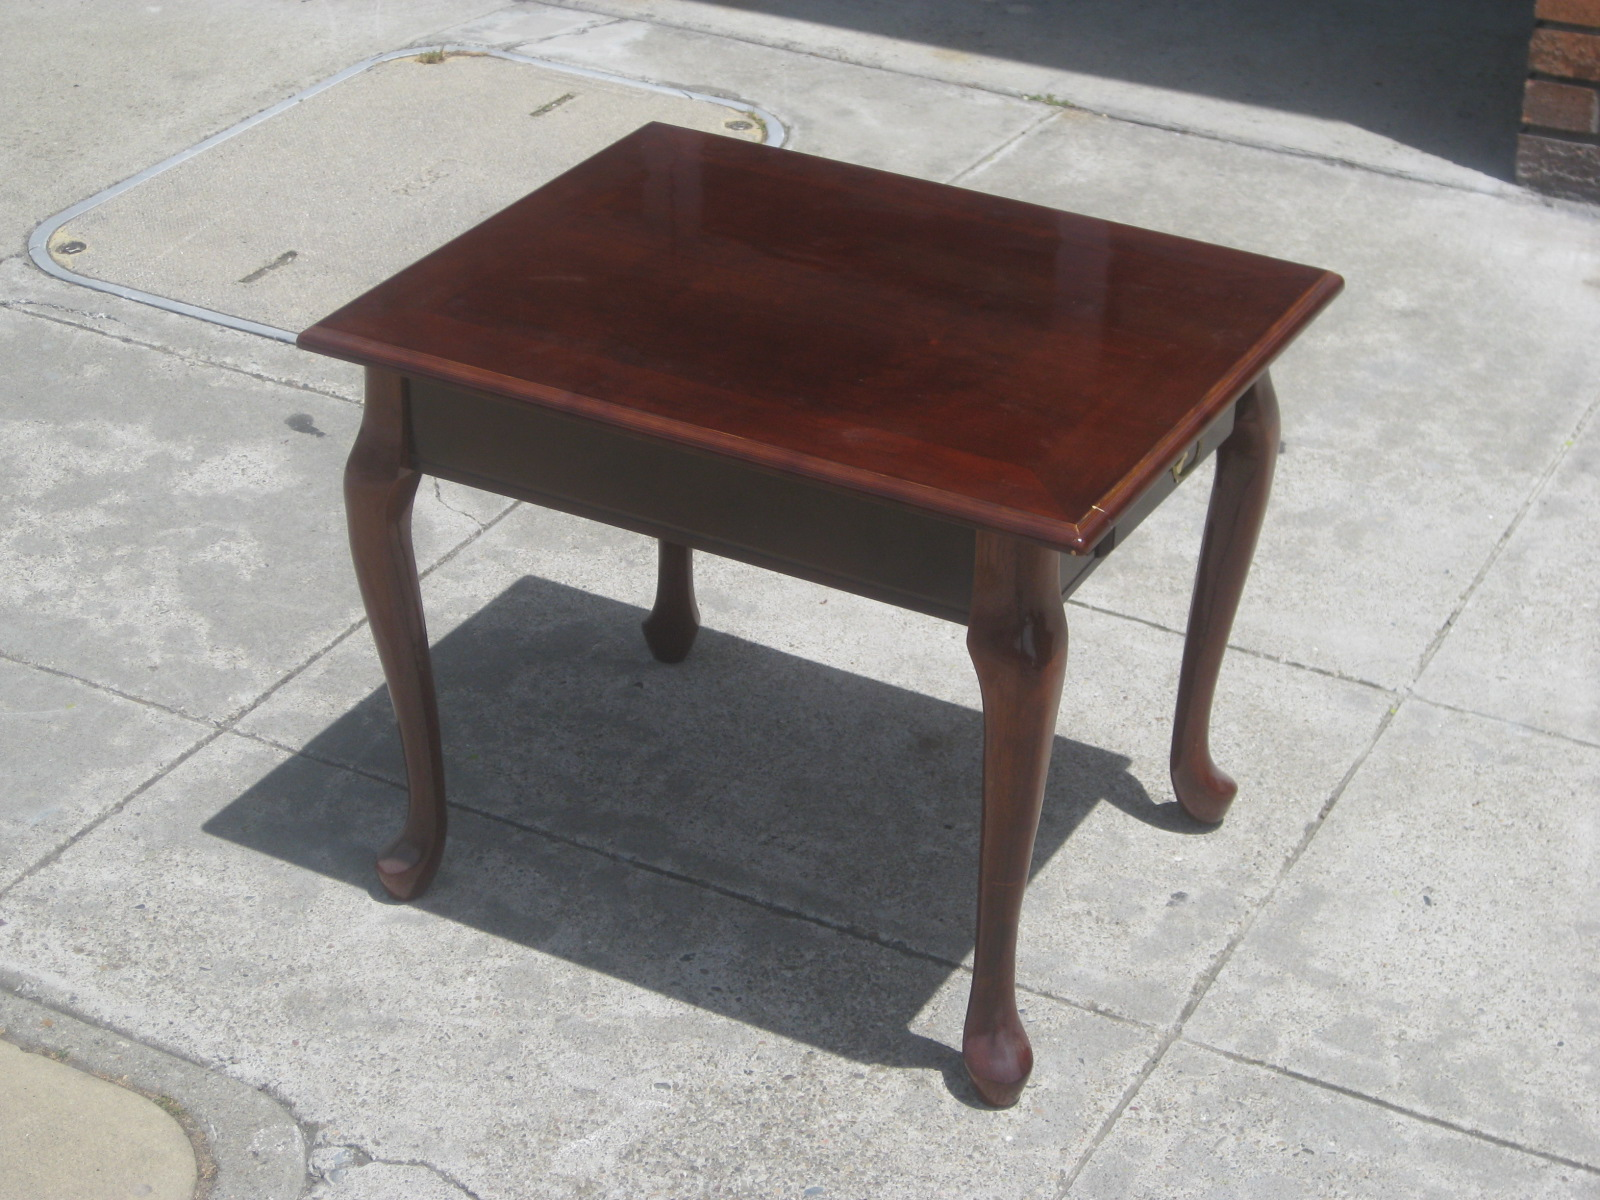 uhuru furniture collectibles sold square queen anne end table ashley good living room paint ideas brown couches parsons side ethan allen pine trestle diy big dog house universal